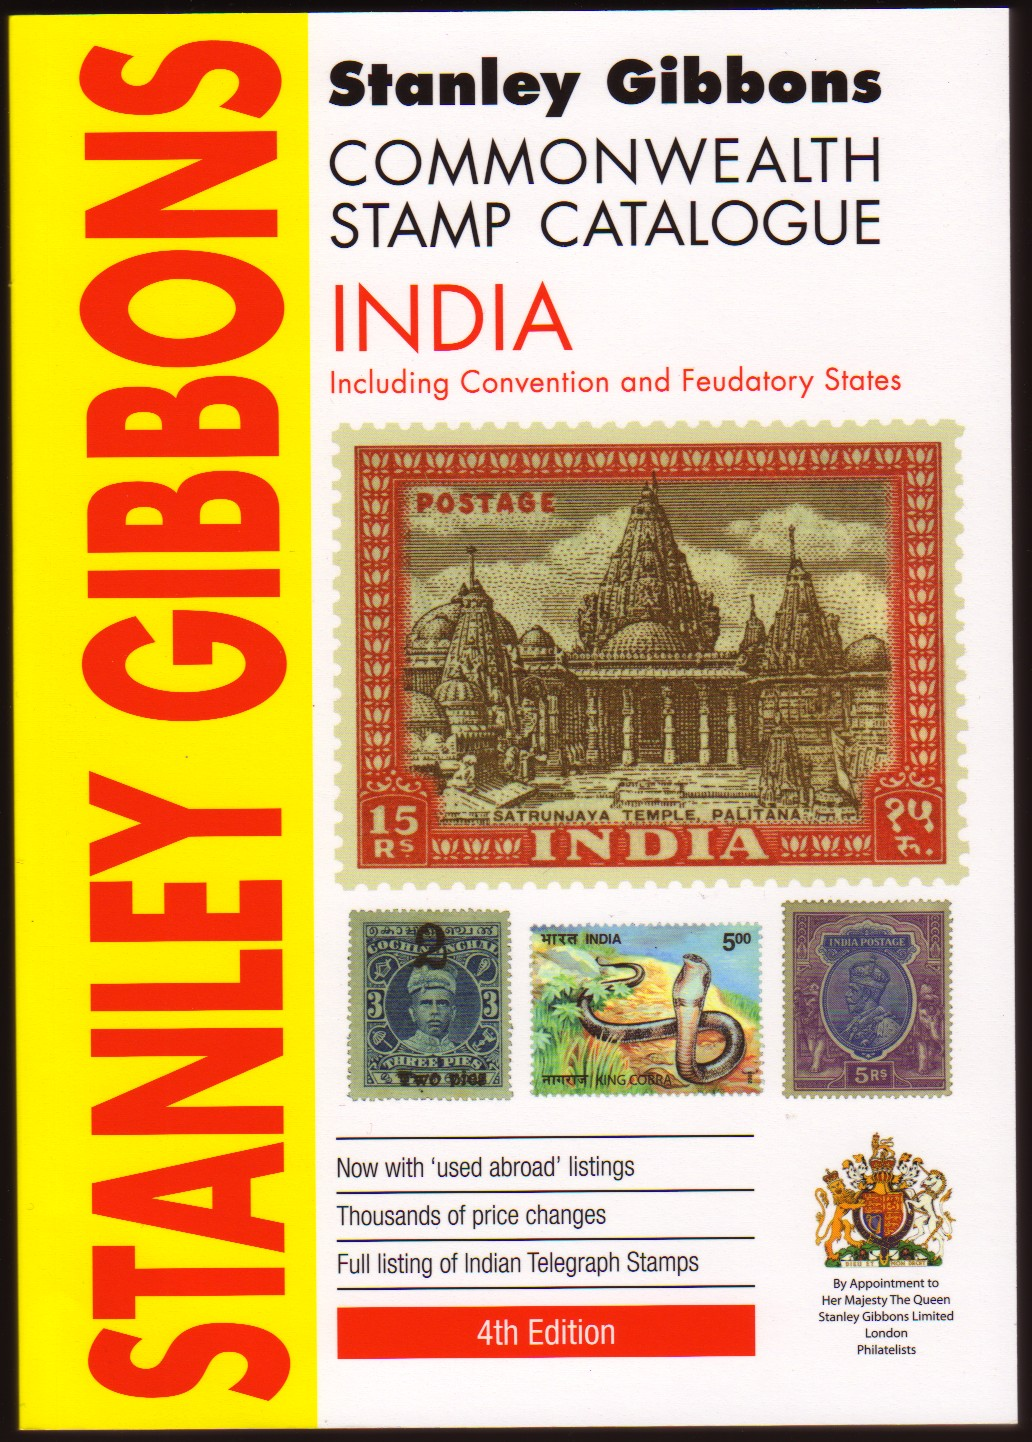 Stamp Catalogs - Armstrong's Stamps- Philatelic Literature - Stamp